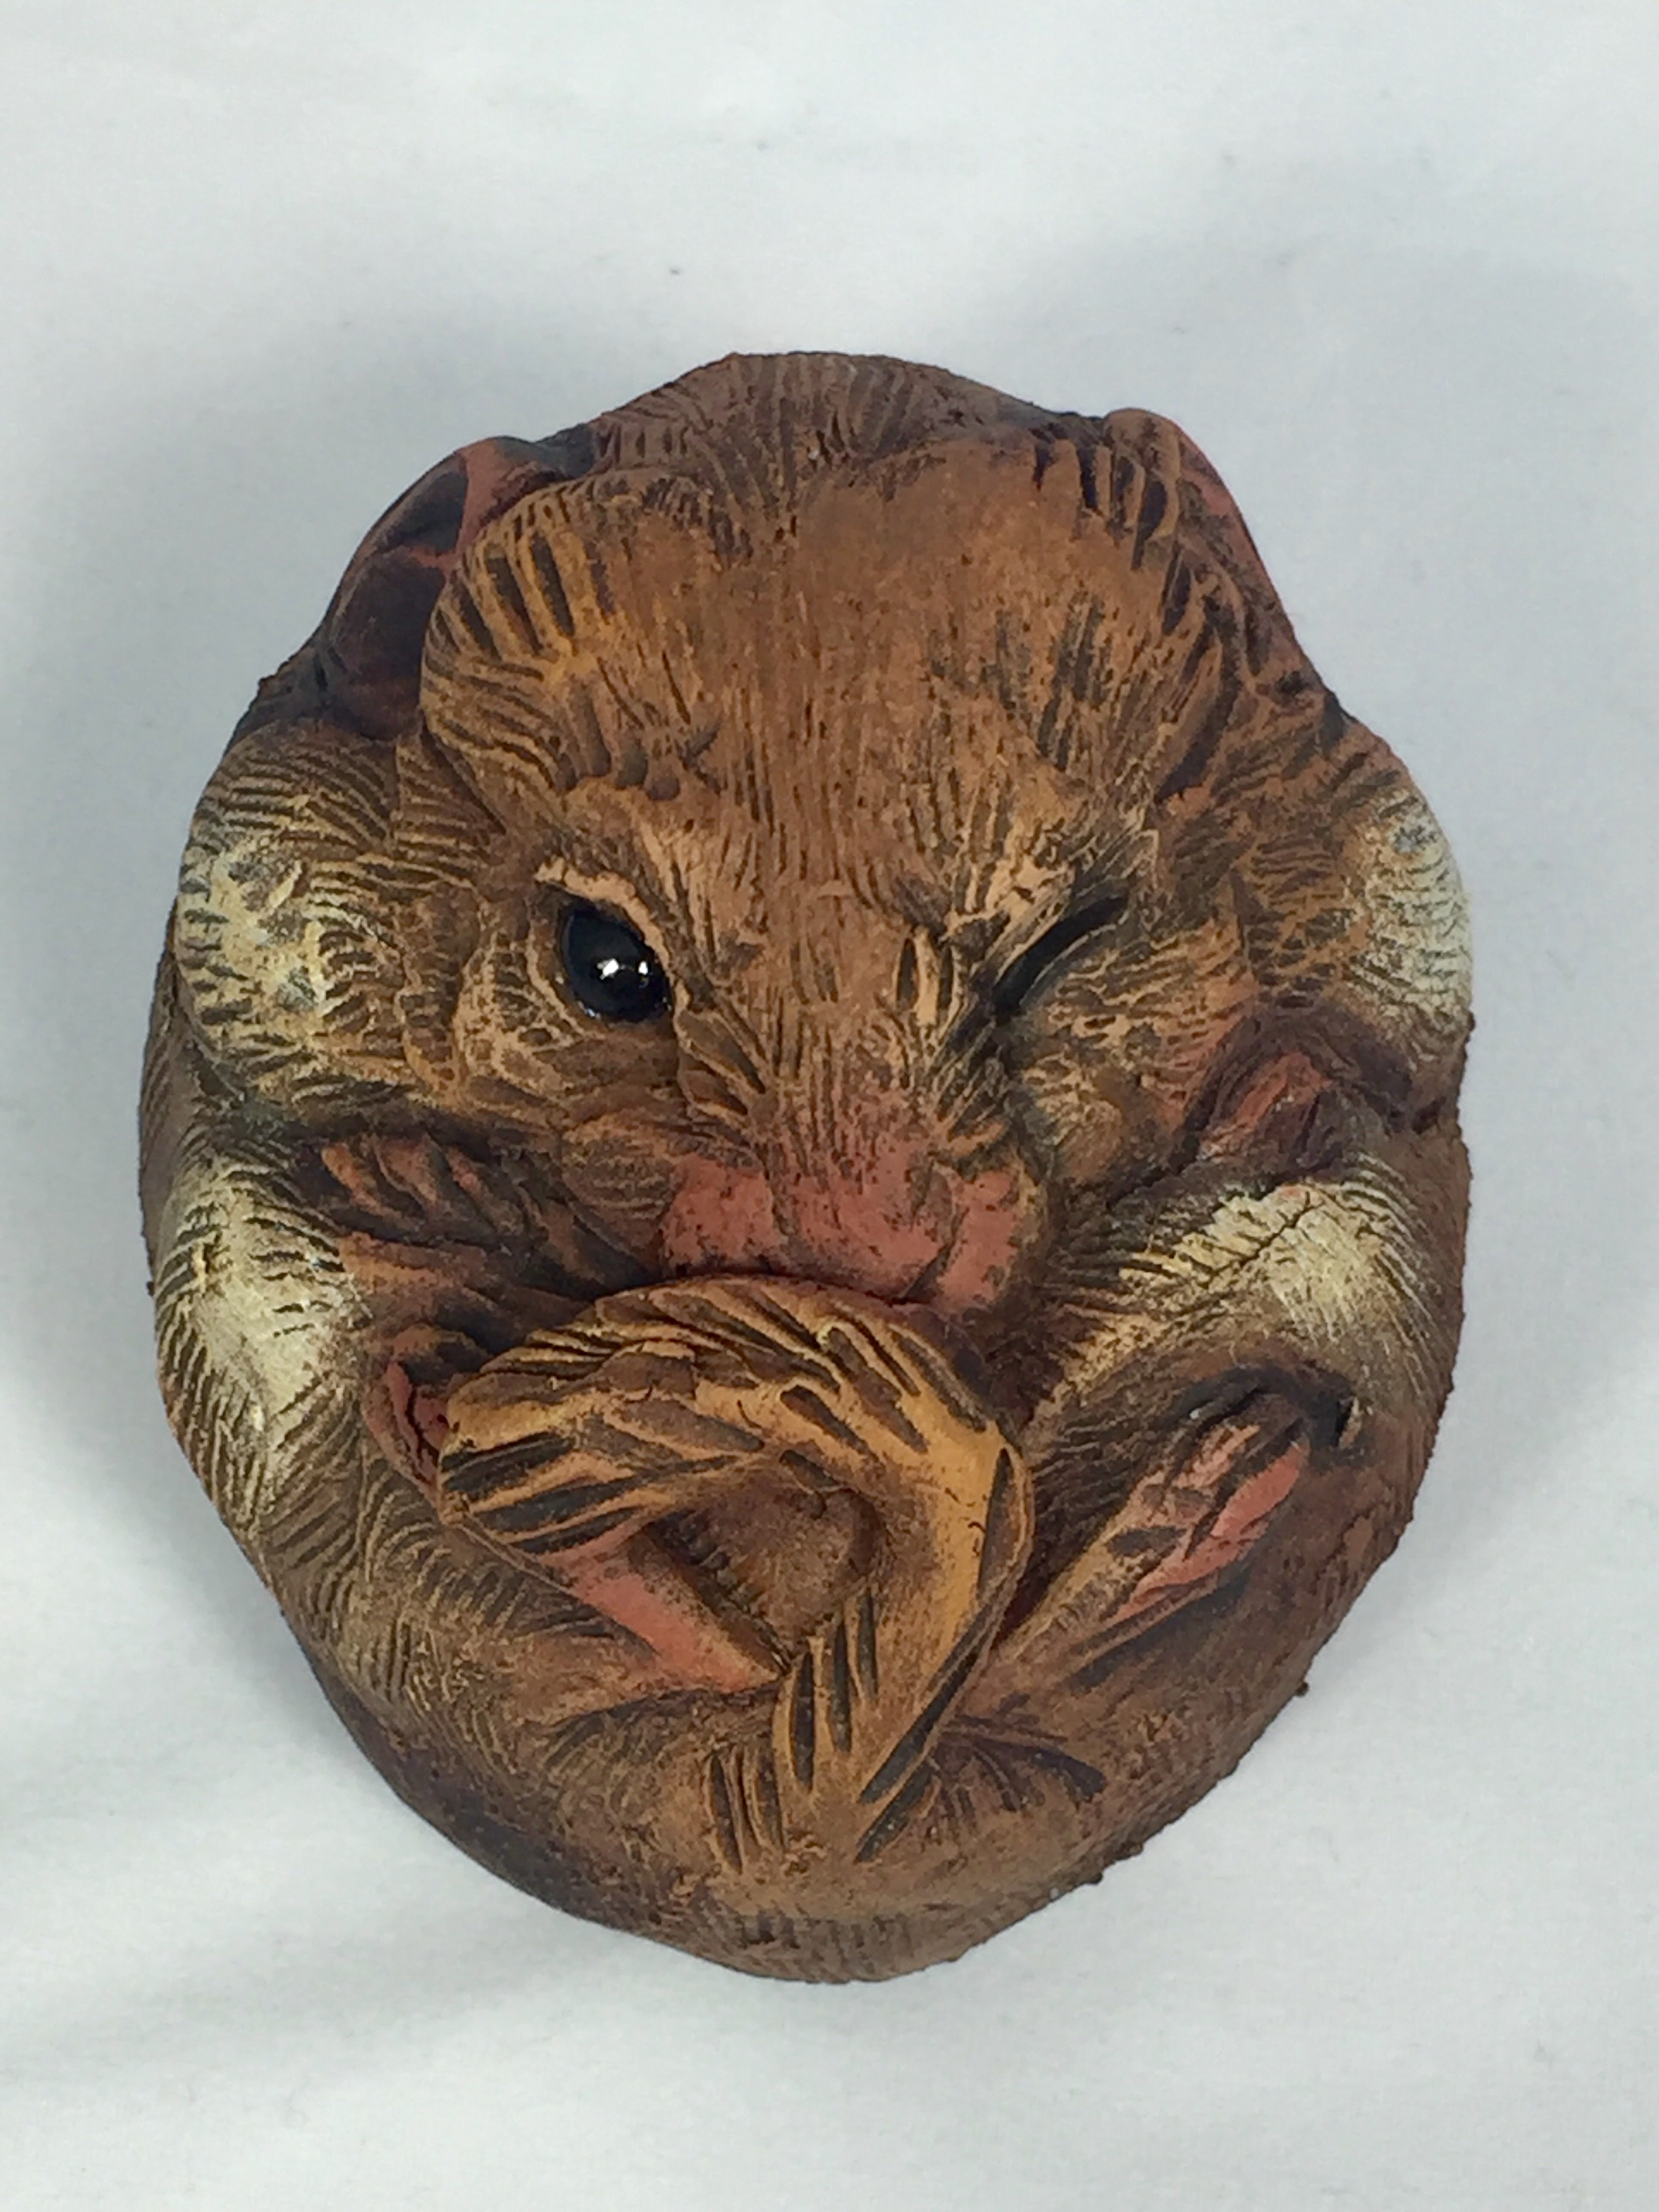 Animal Sculpture - Dormouse